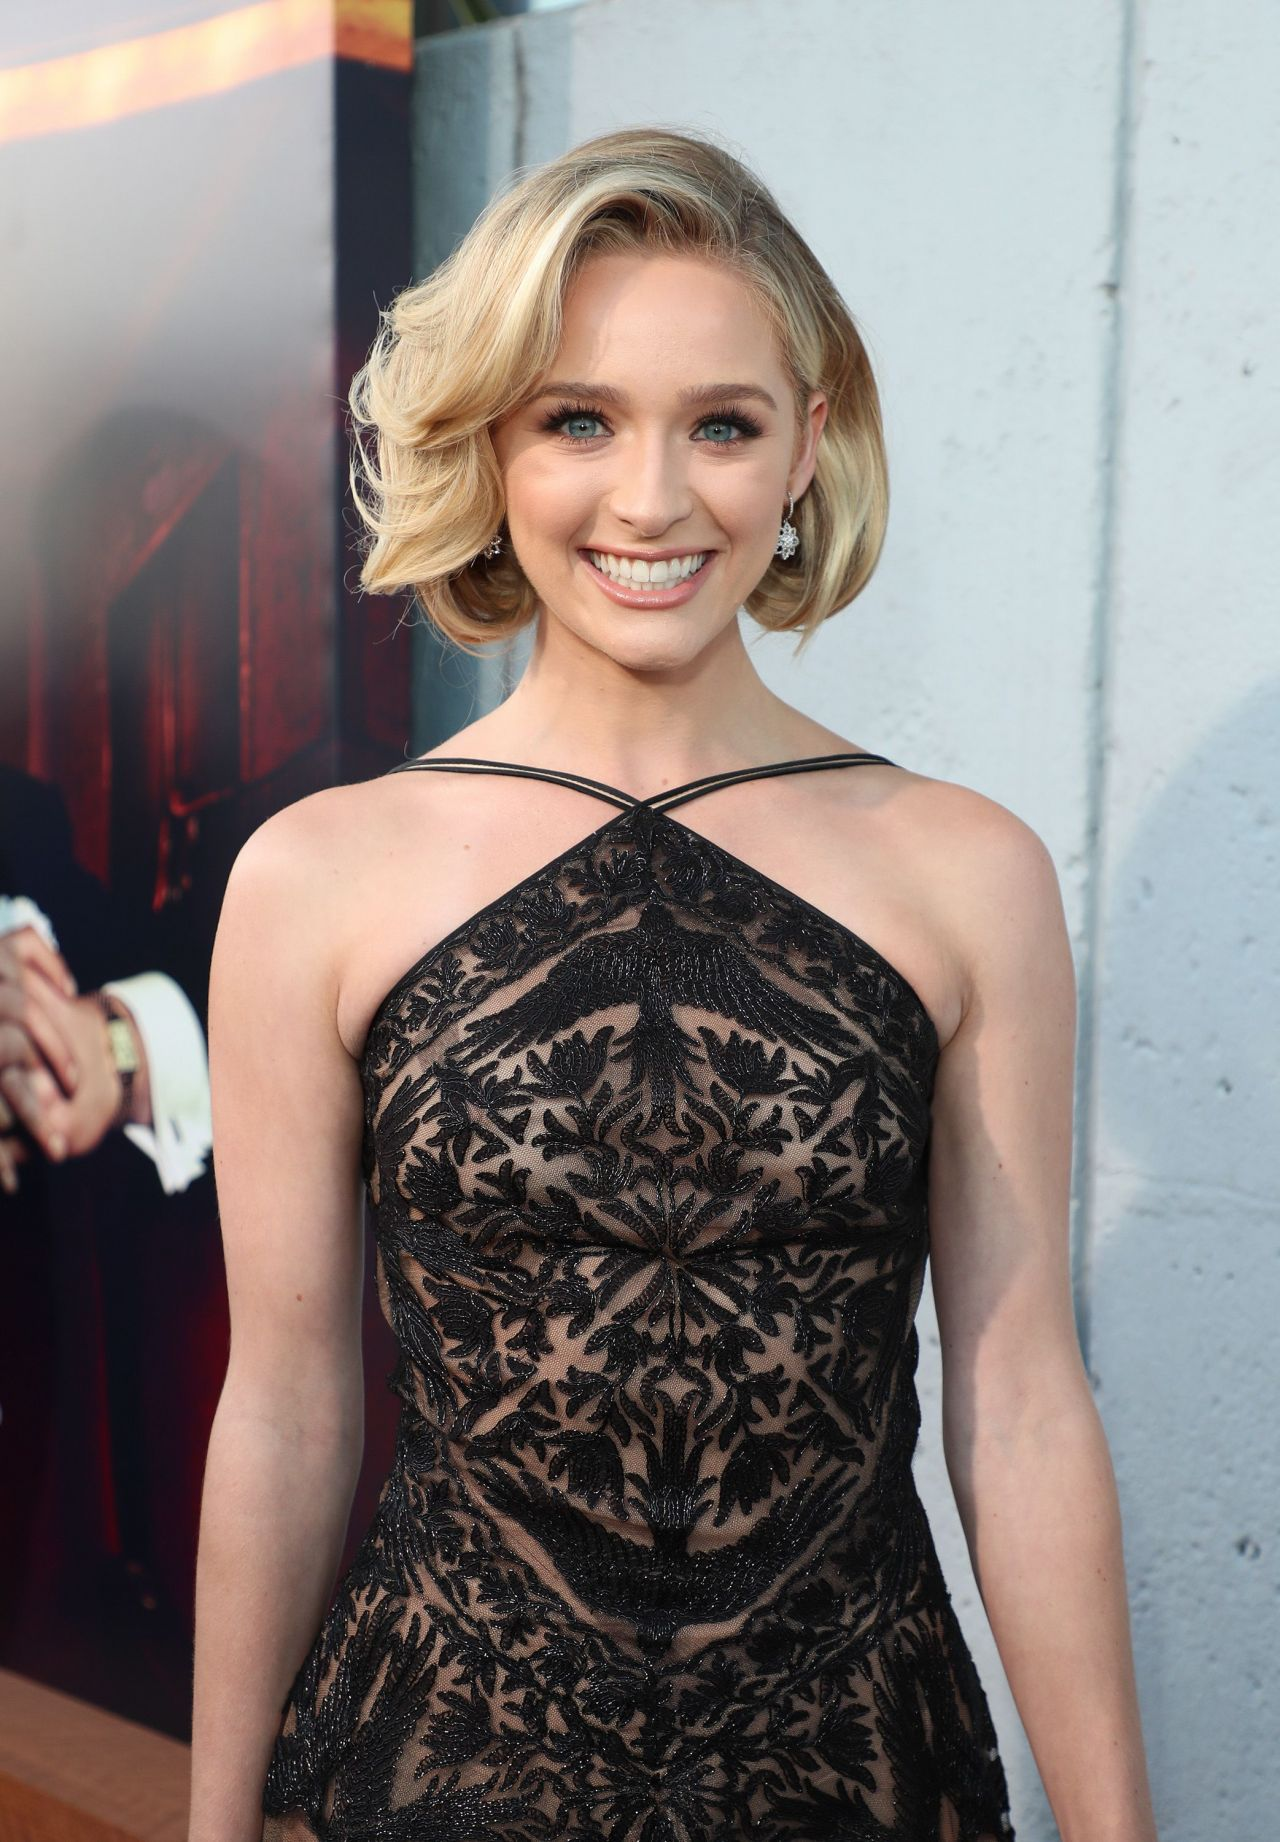 Greer Grammer naked (52 pics) Paparazzi, Snapchat, swimsuit